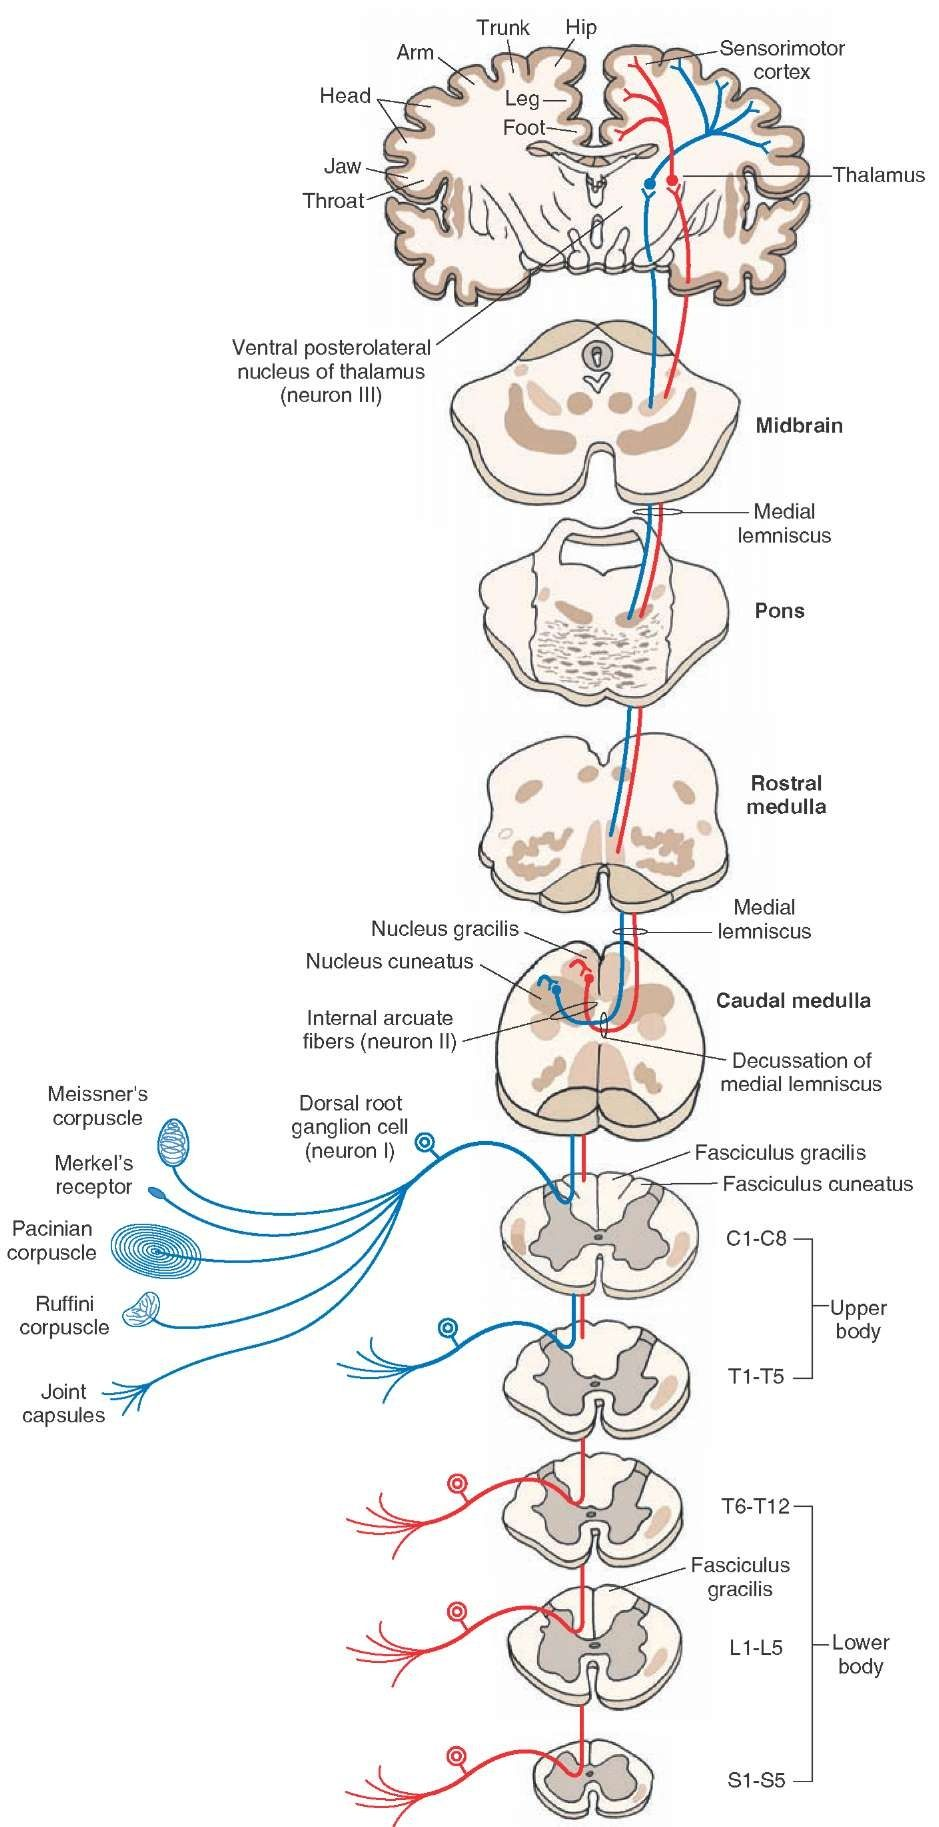 medium resolution of diagram showing the course of fibers in the dorsal column the fasciculus gracilis exists at all levels of the spinal cord and contains long ascending